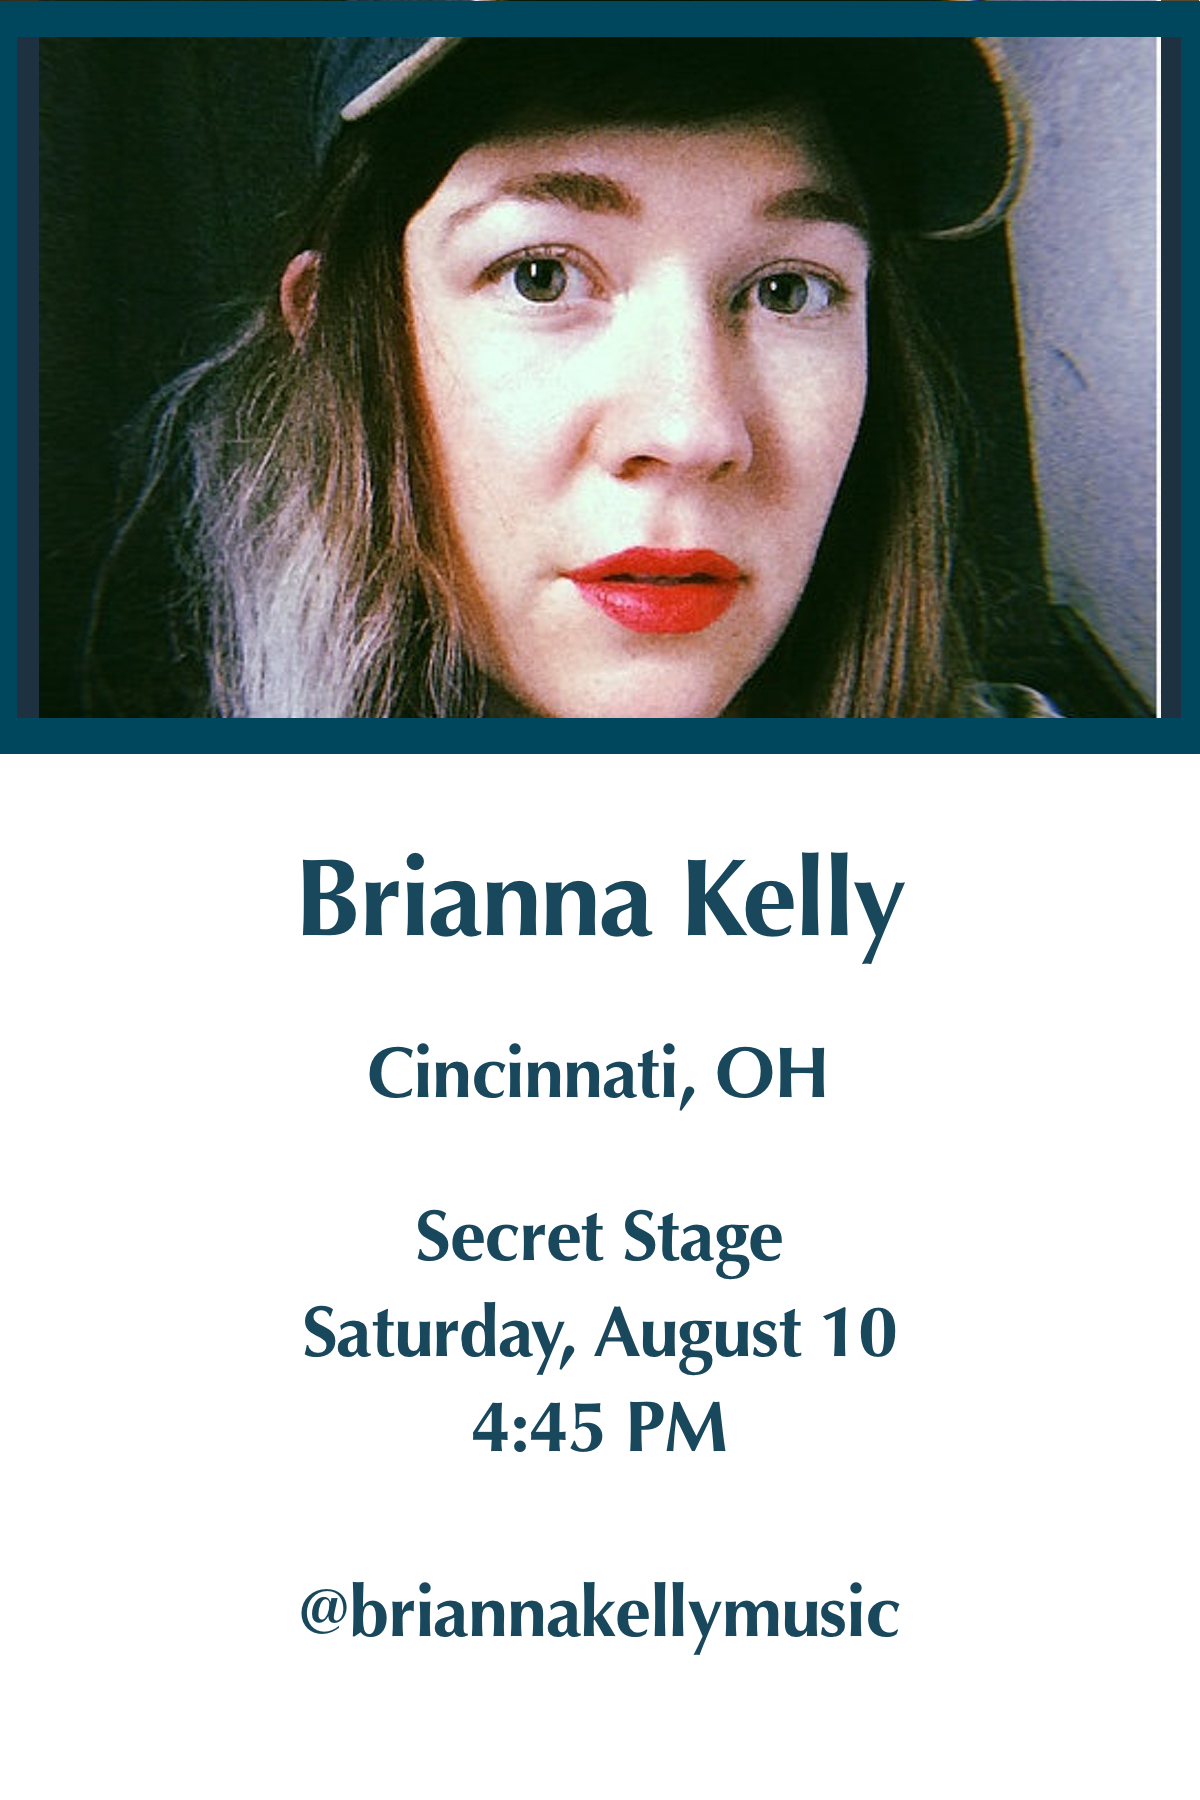 Brianna Kelly Card.jpg